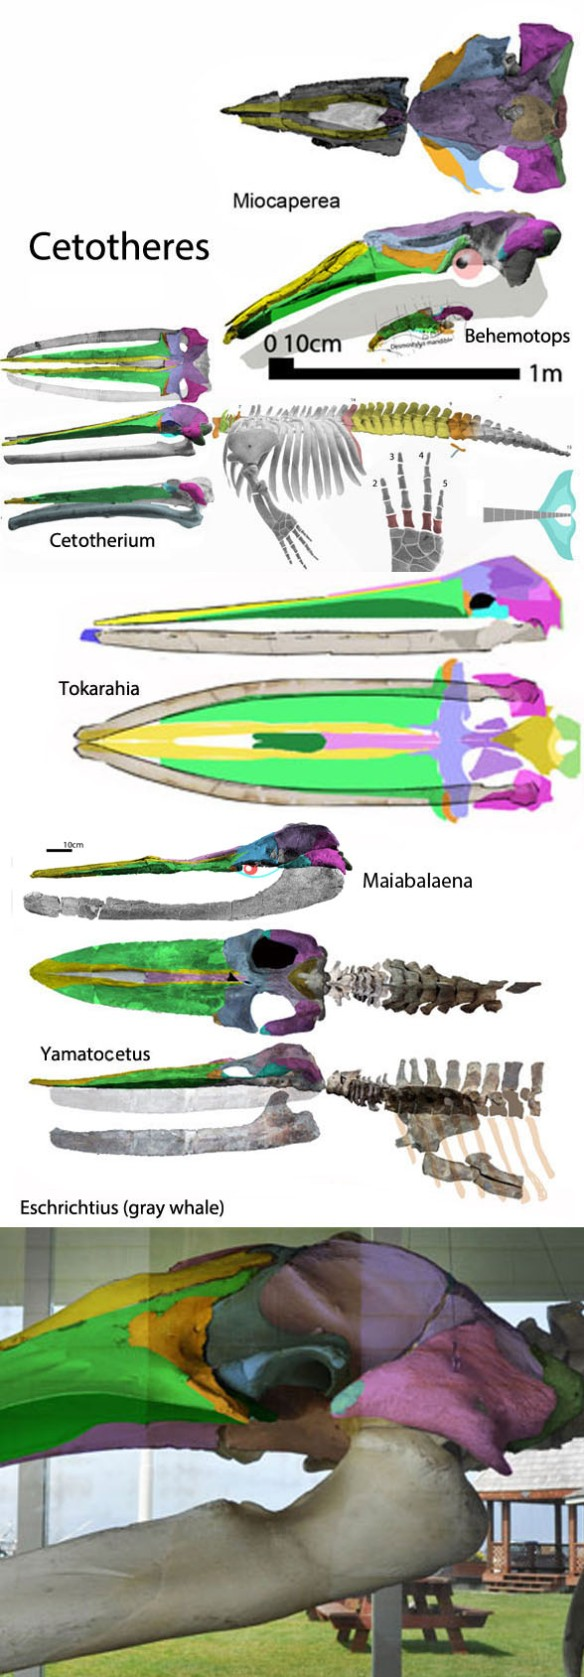 Figure 2. A selection of cetotheres, including Maiabalaena, to scale.